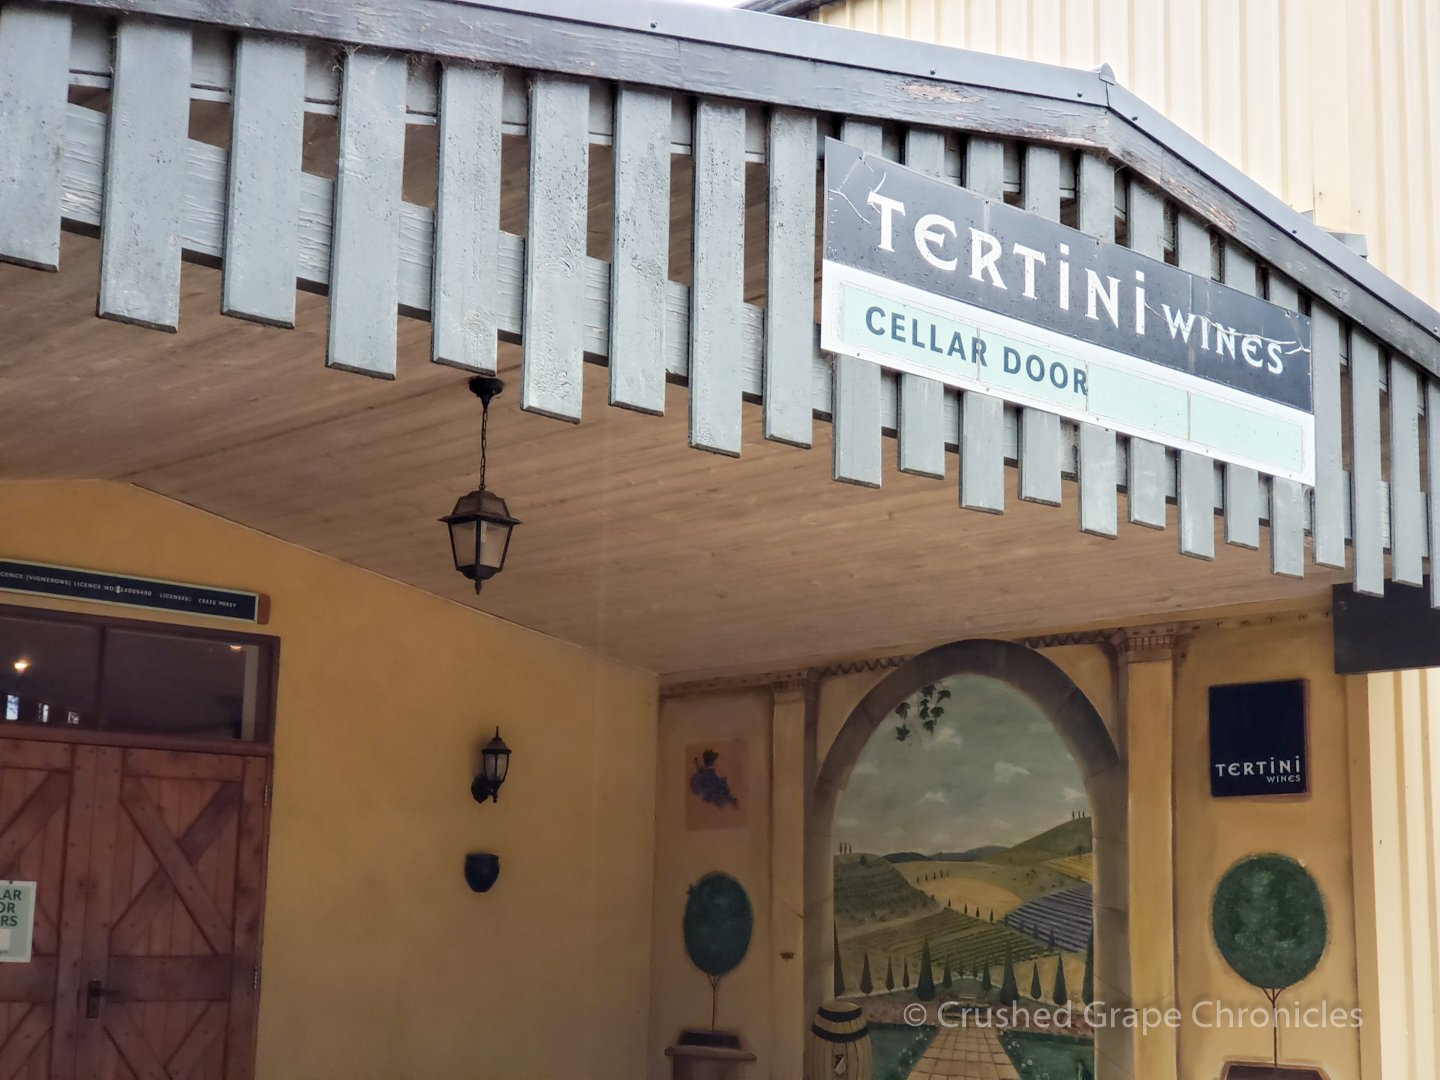 The Tertini Cellar Door near Mittagong in Southern Highlands New South Wales Australia